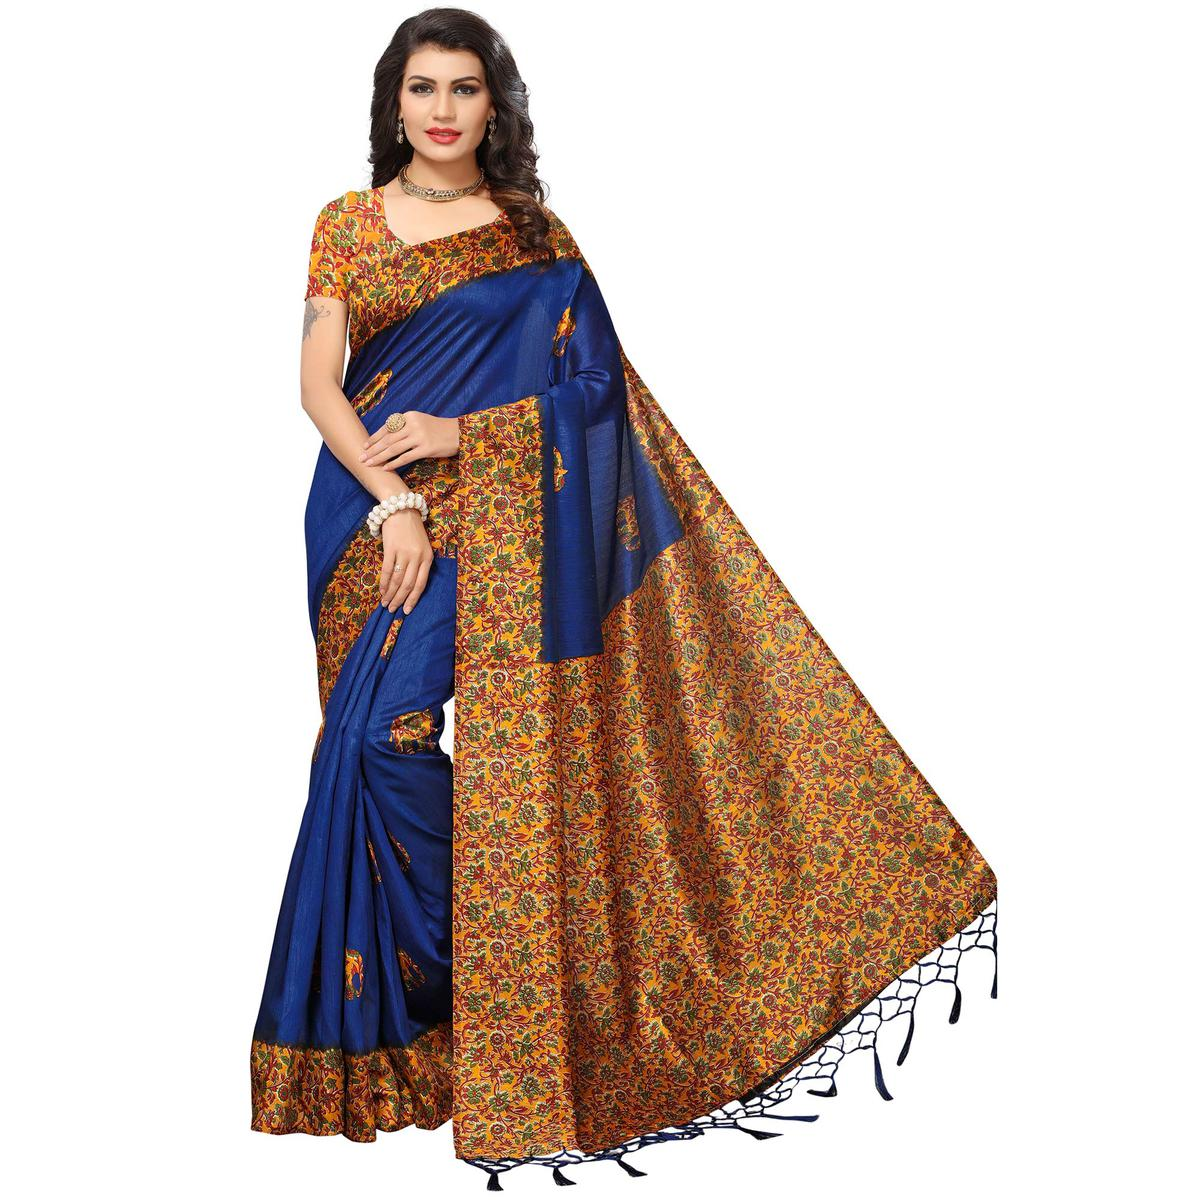 Desiring Blue Colored Festive Wear Printed Silk Saree